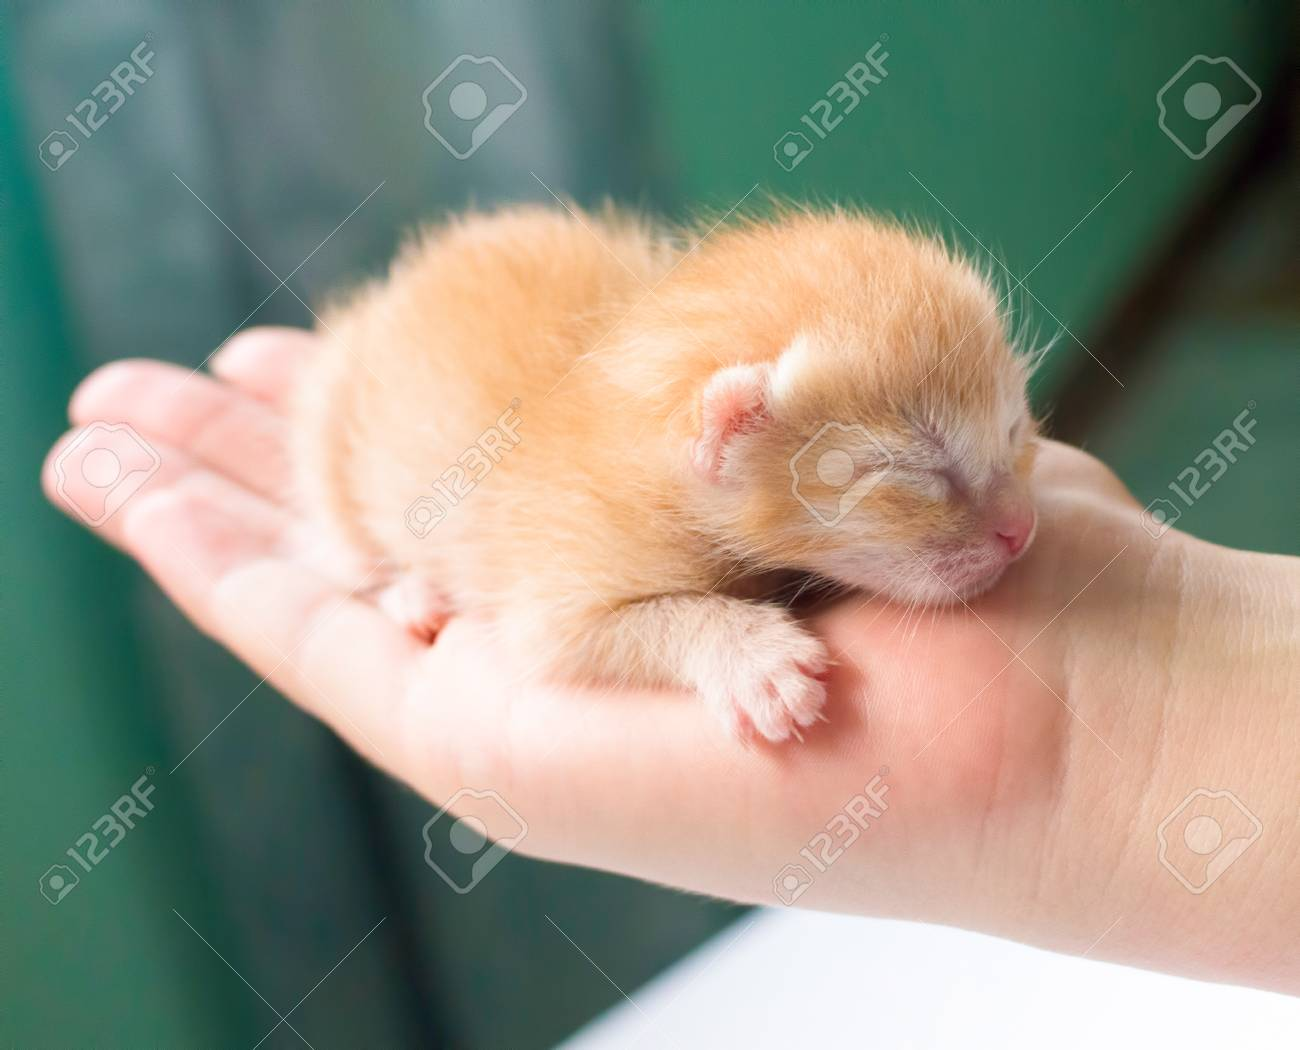 Newborn Kitty In Hand New Born Baby Cat Red Kitty In Caring